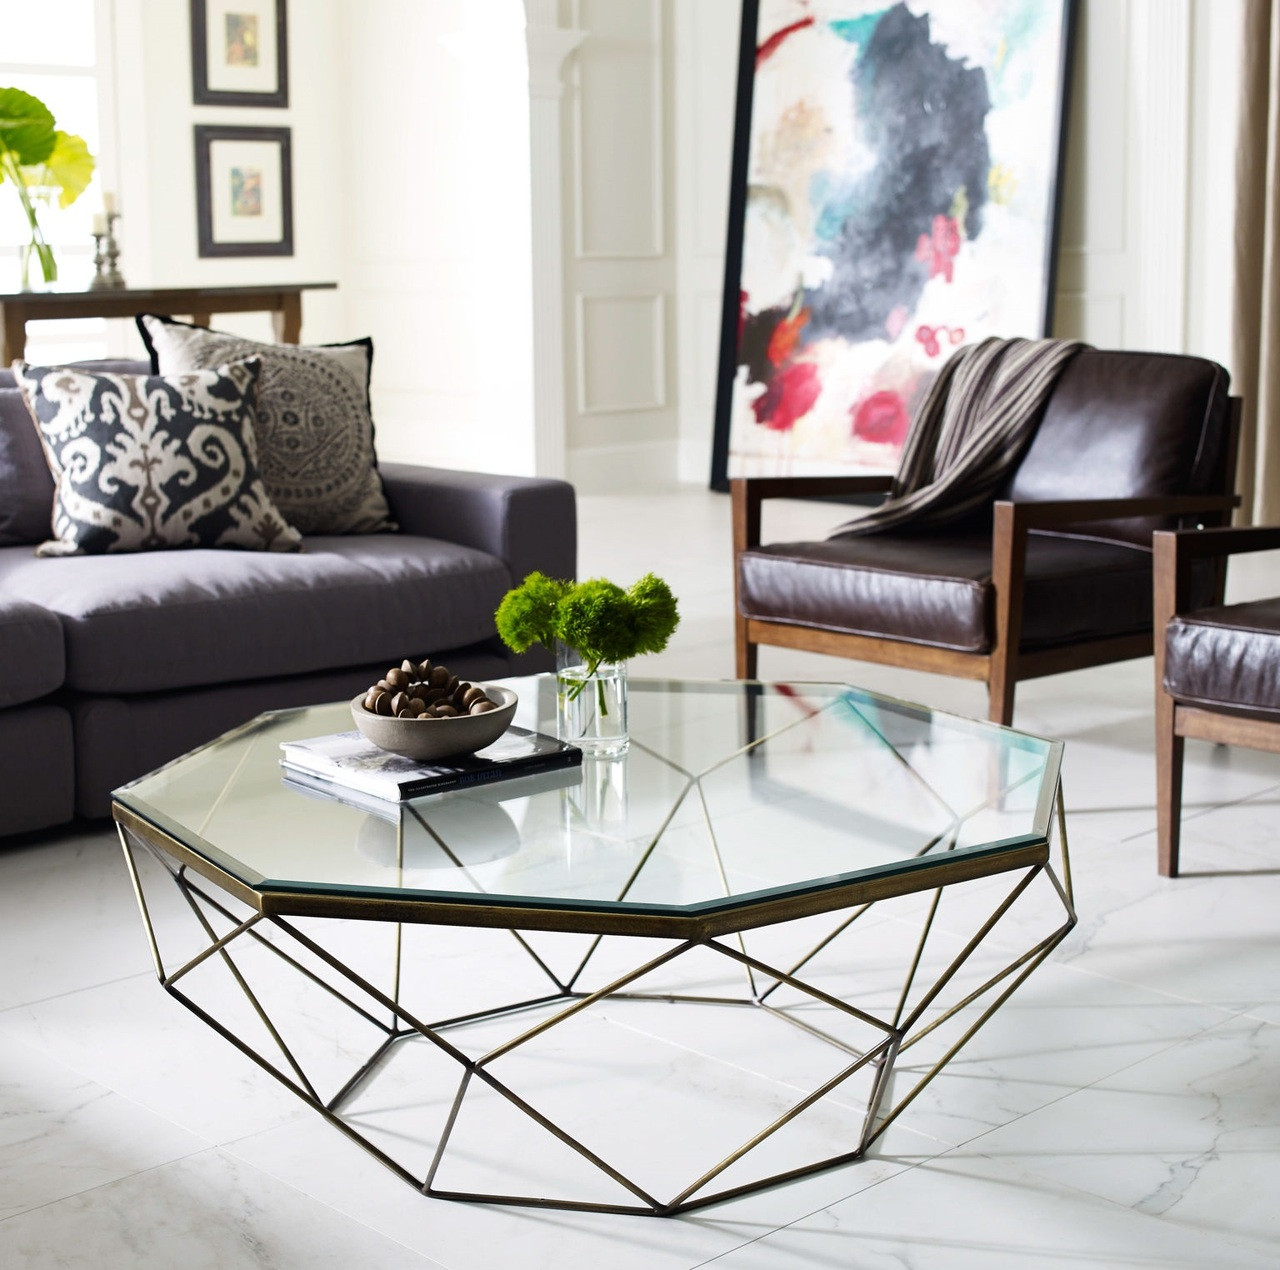 Geometric Antique Brass Coffee Table With Glass Top